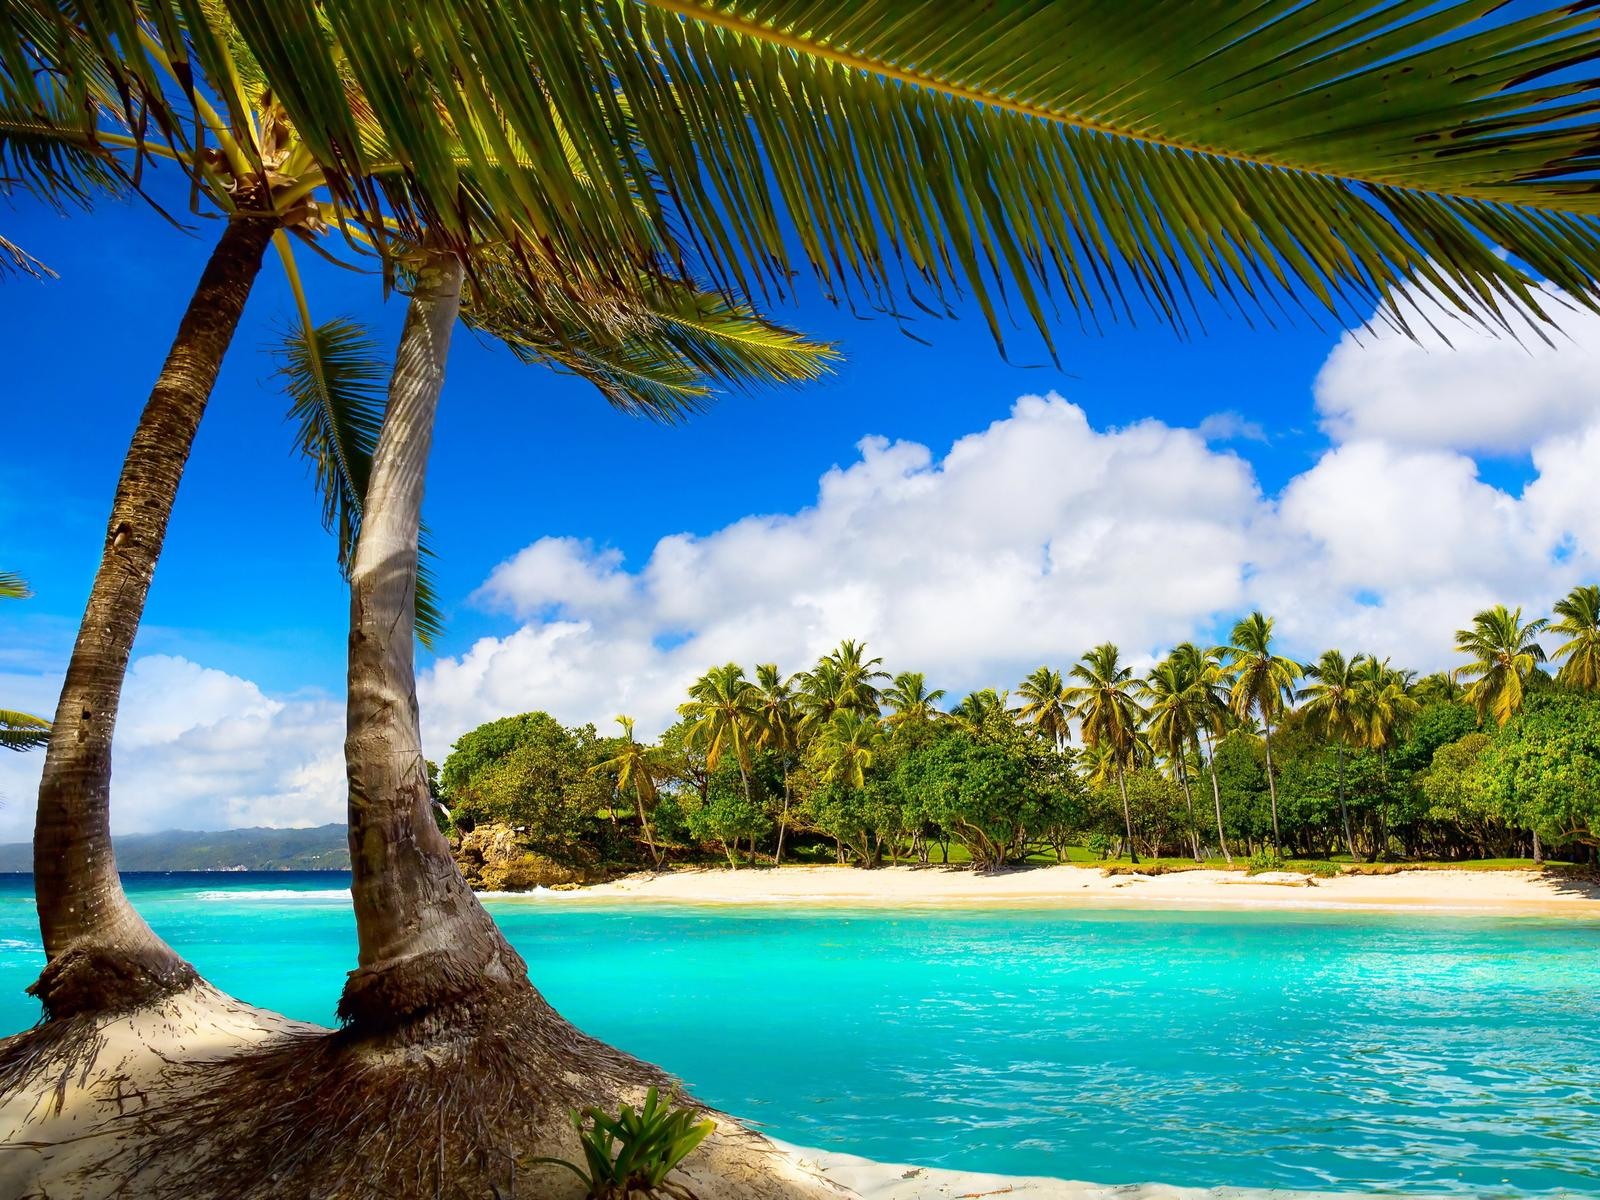 Relaxing Place For A Special Summer Holiday Tropical Island